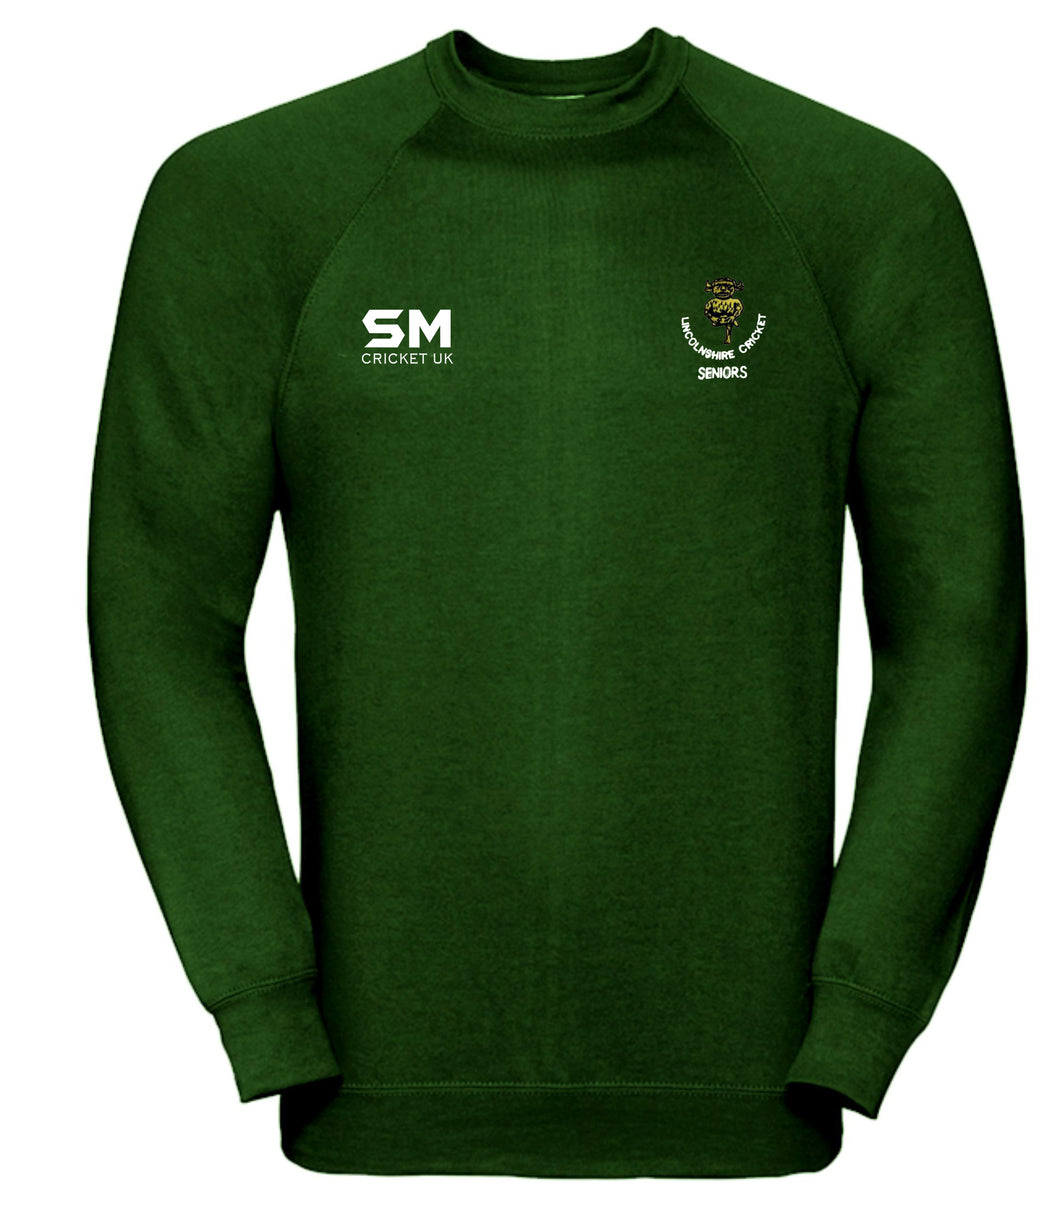 Lincolnshire Cricket - Seniors Training Sweatshirt - Senior